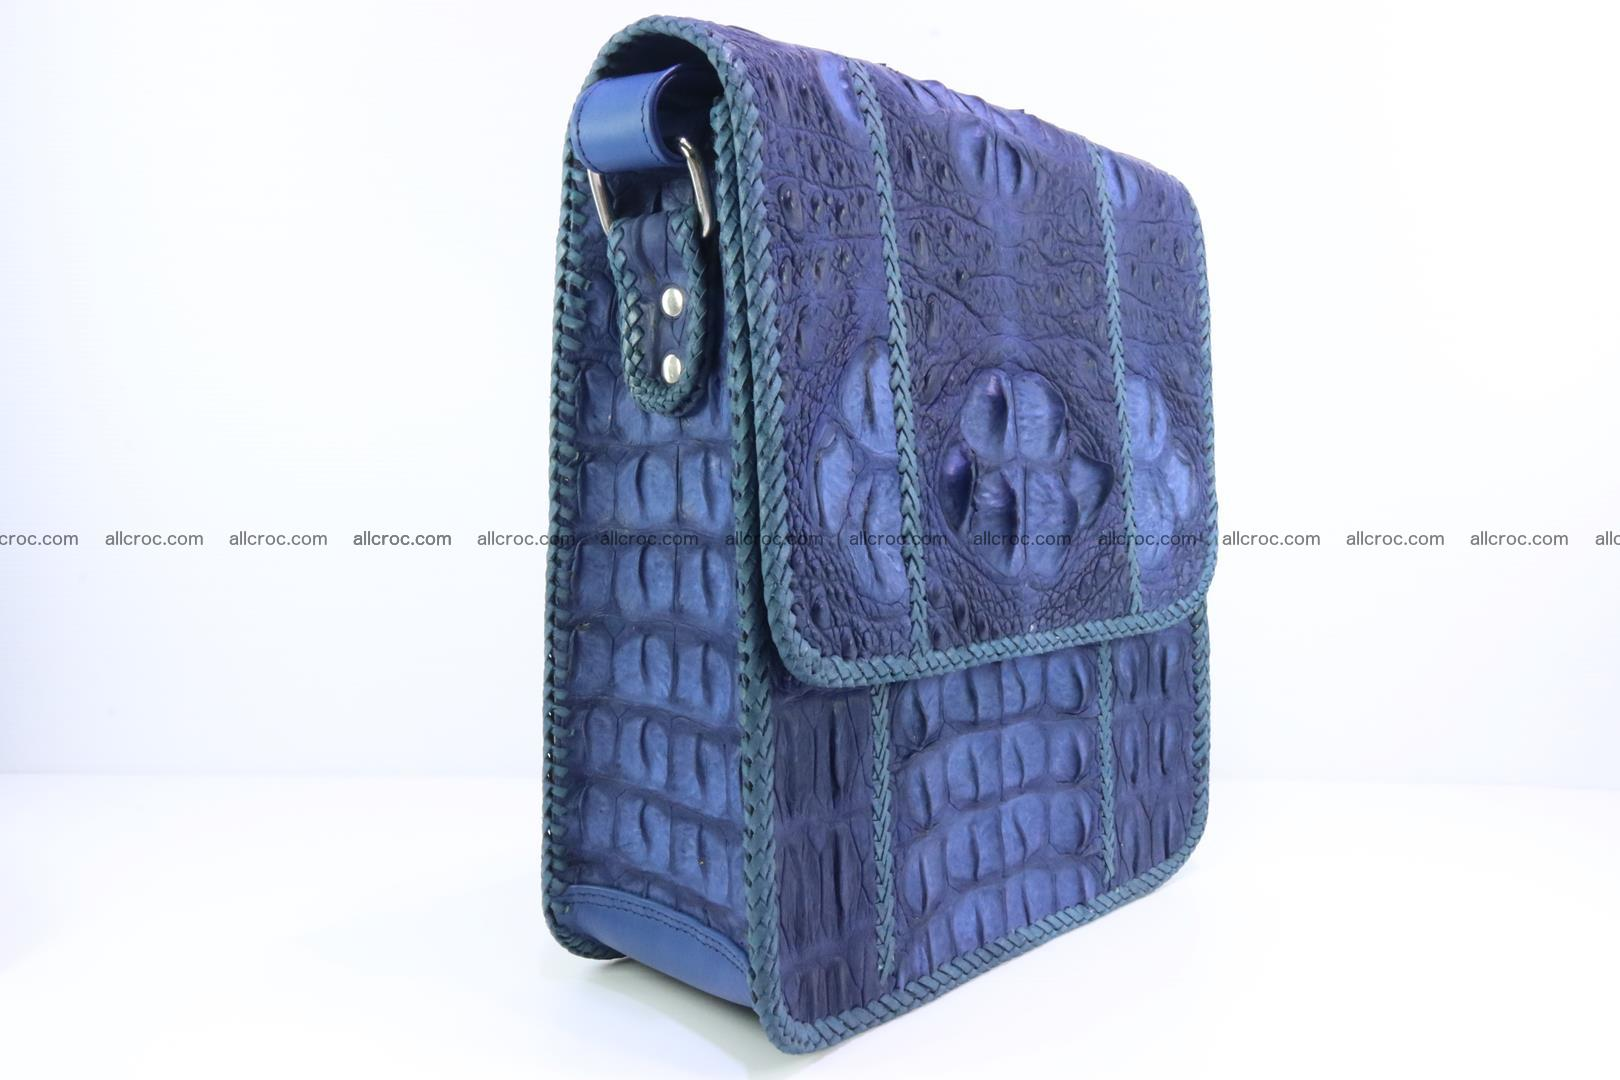 Сrocodile skin shoulder bag with braided edges 140 Foto 1